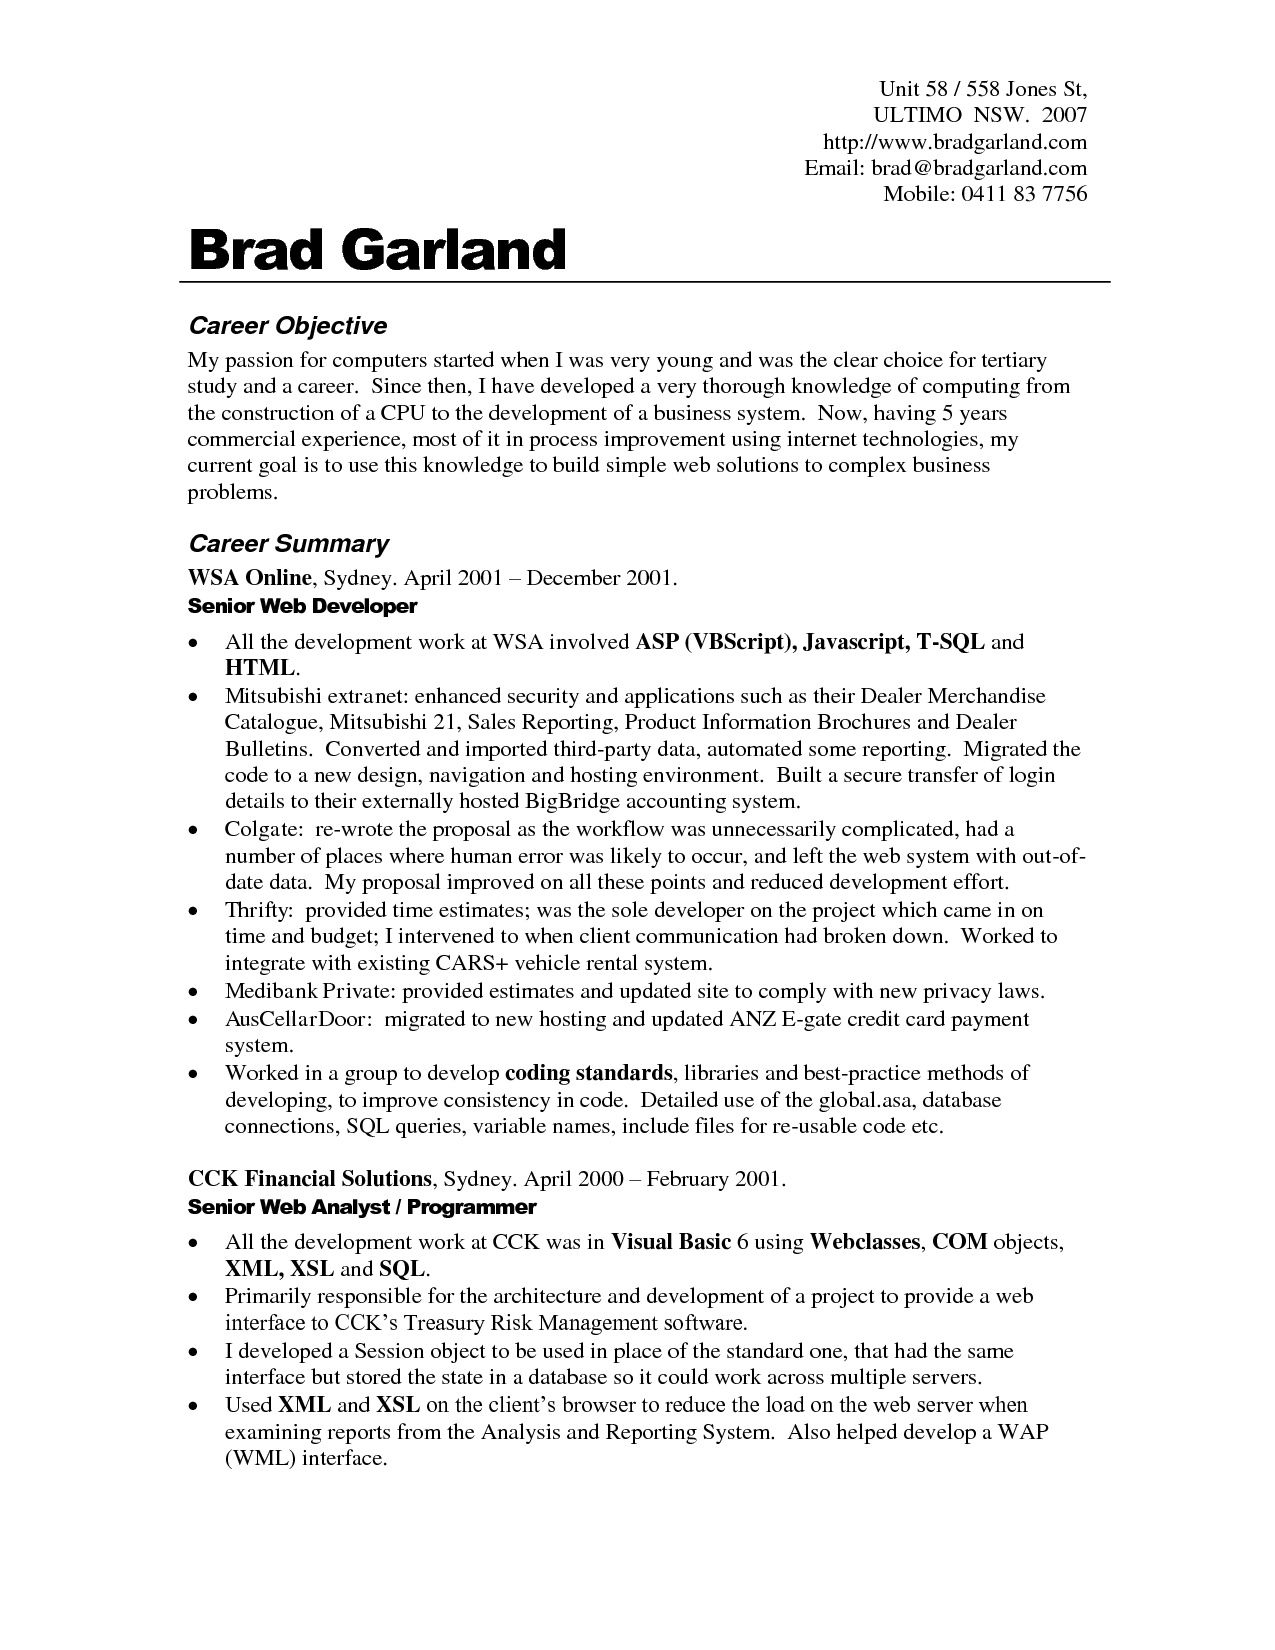 objective on job resumes - Resume Example For Jobs